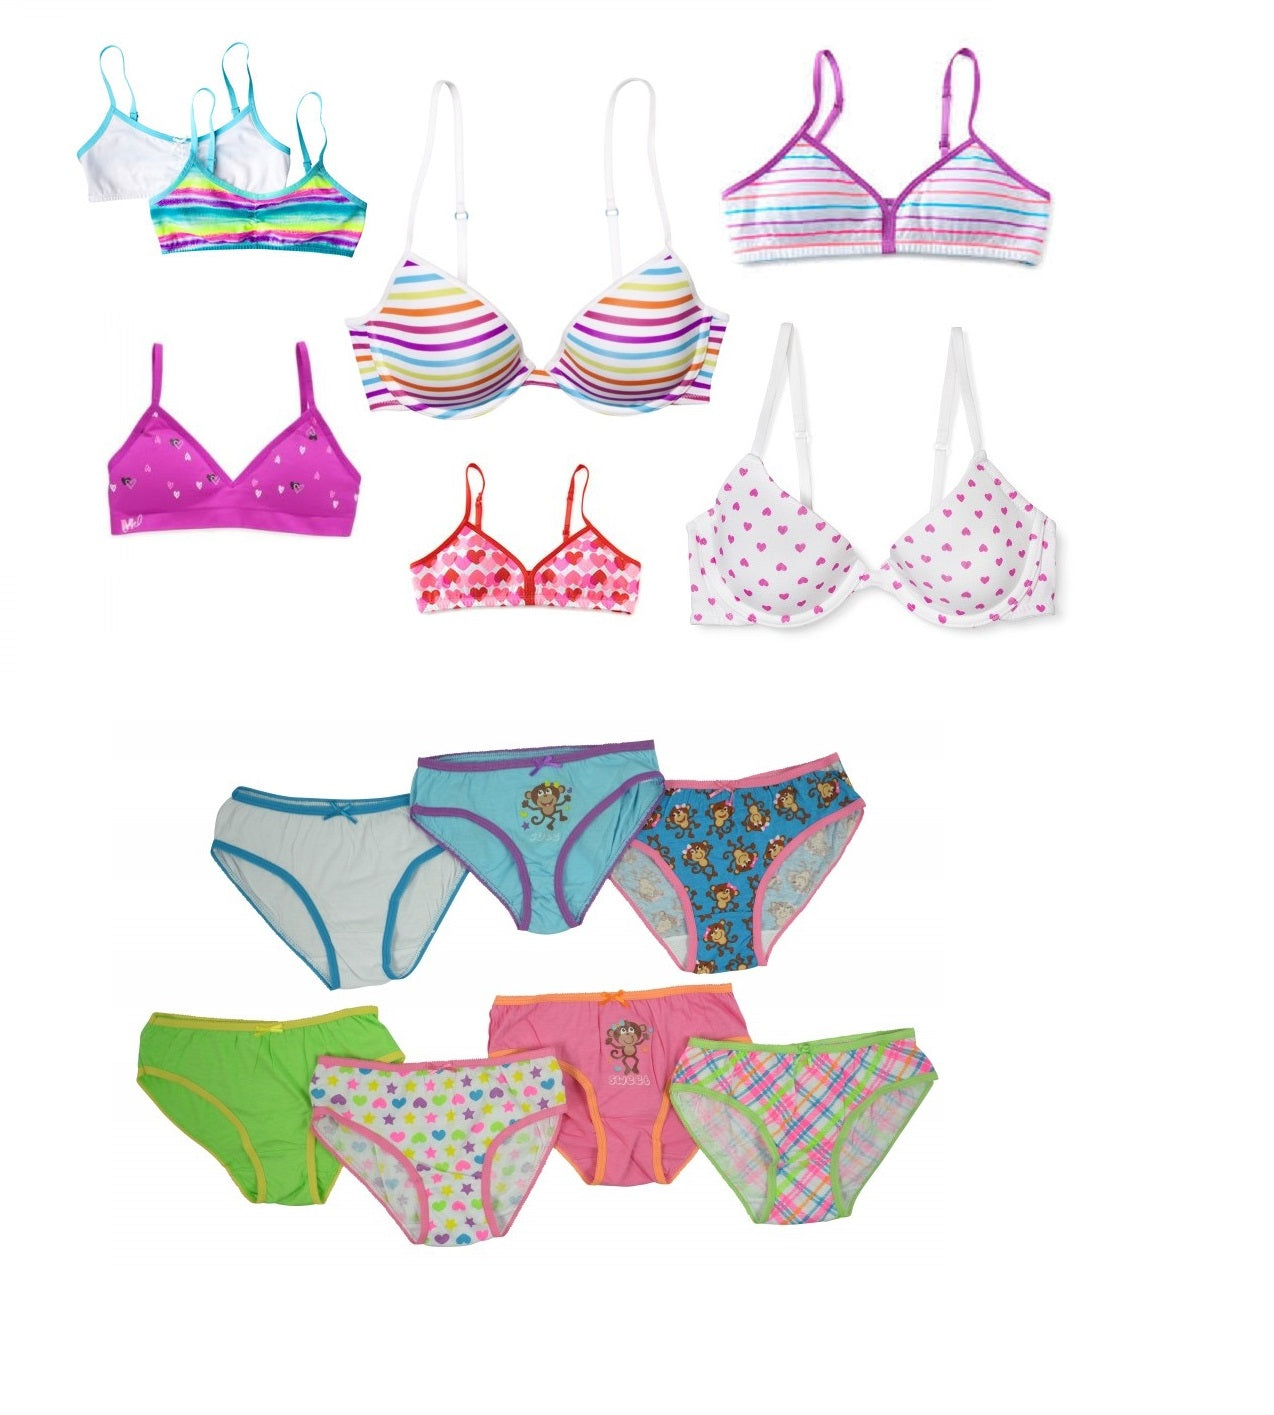 3f2ab775e0 Kids Wholesale Kids PANTIES Bras Girls Underwear and Sets Bralettes  Boyshorts and more